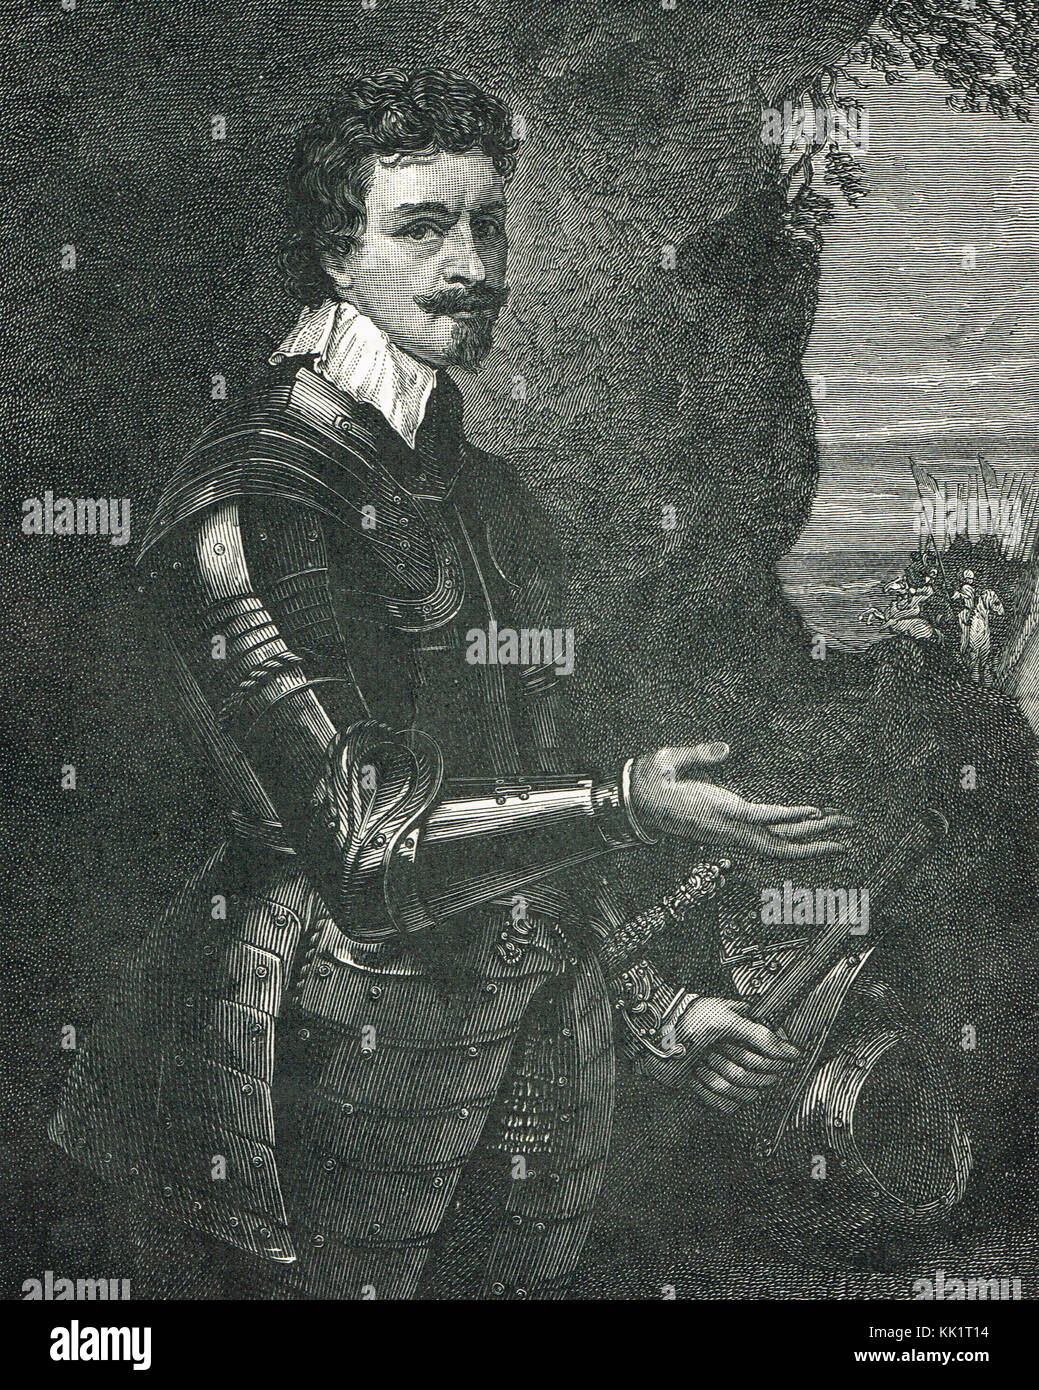 Thomas Wentworth, 1st Earl of Strafford - Stock Image